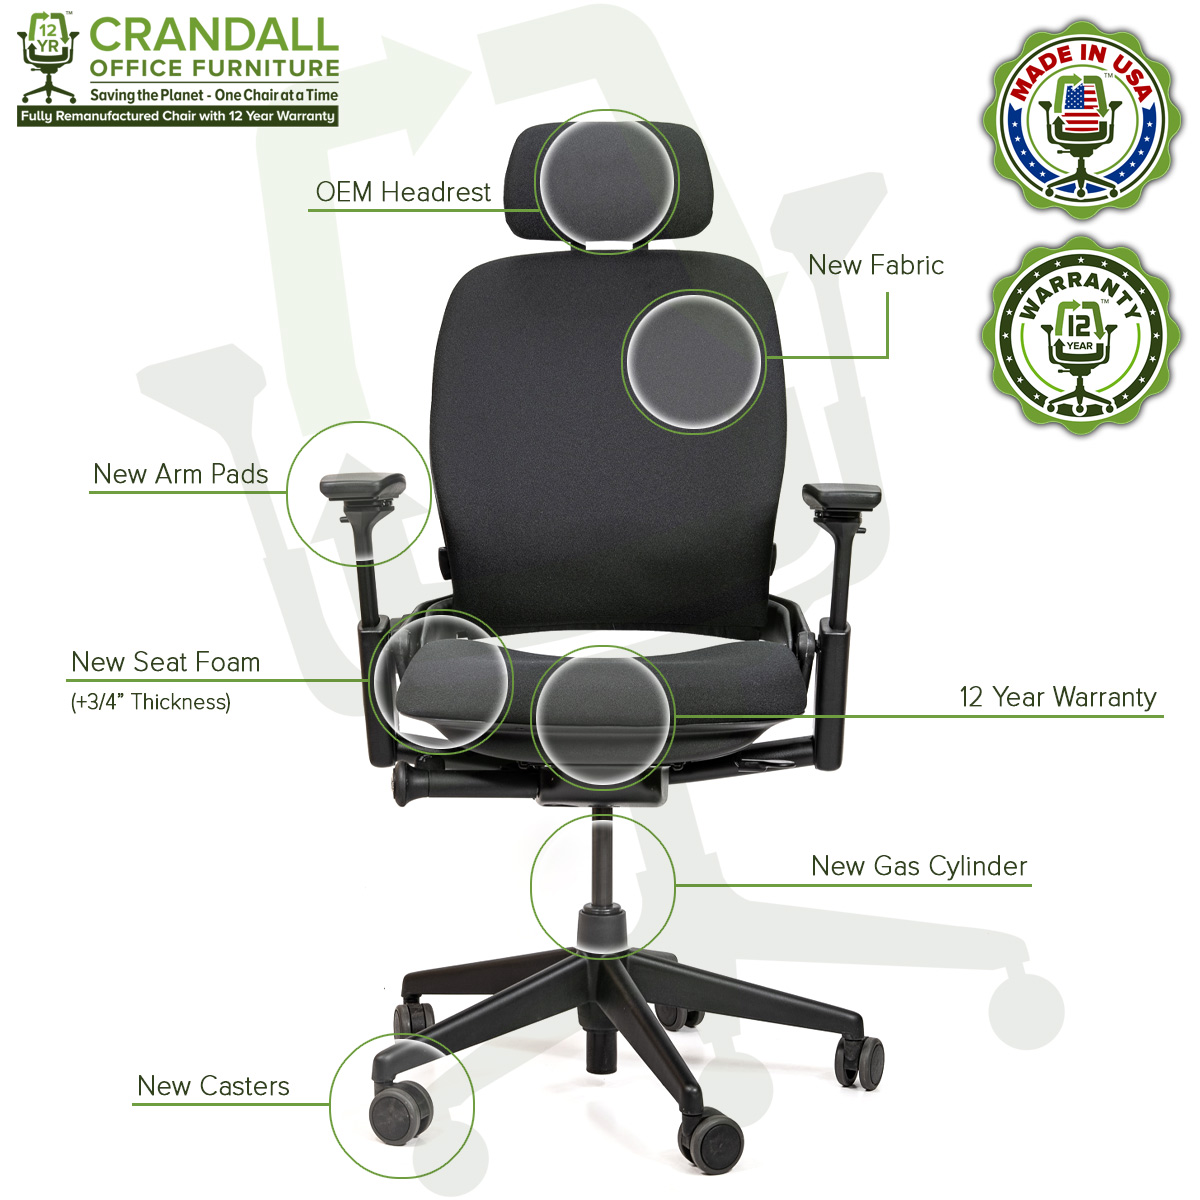 Crandall Office Furniture Remanufactured Steelcase V2 Leap Chair with Headrest 06